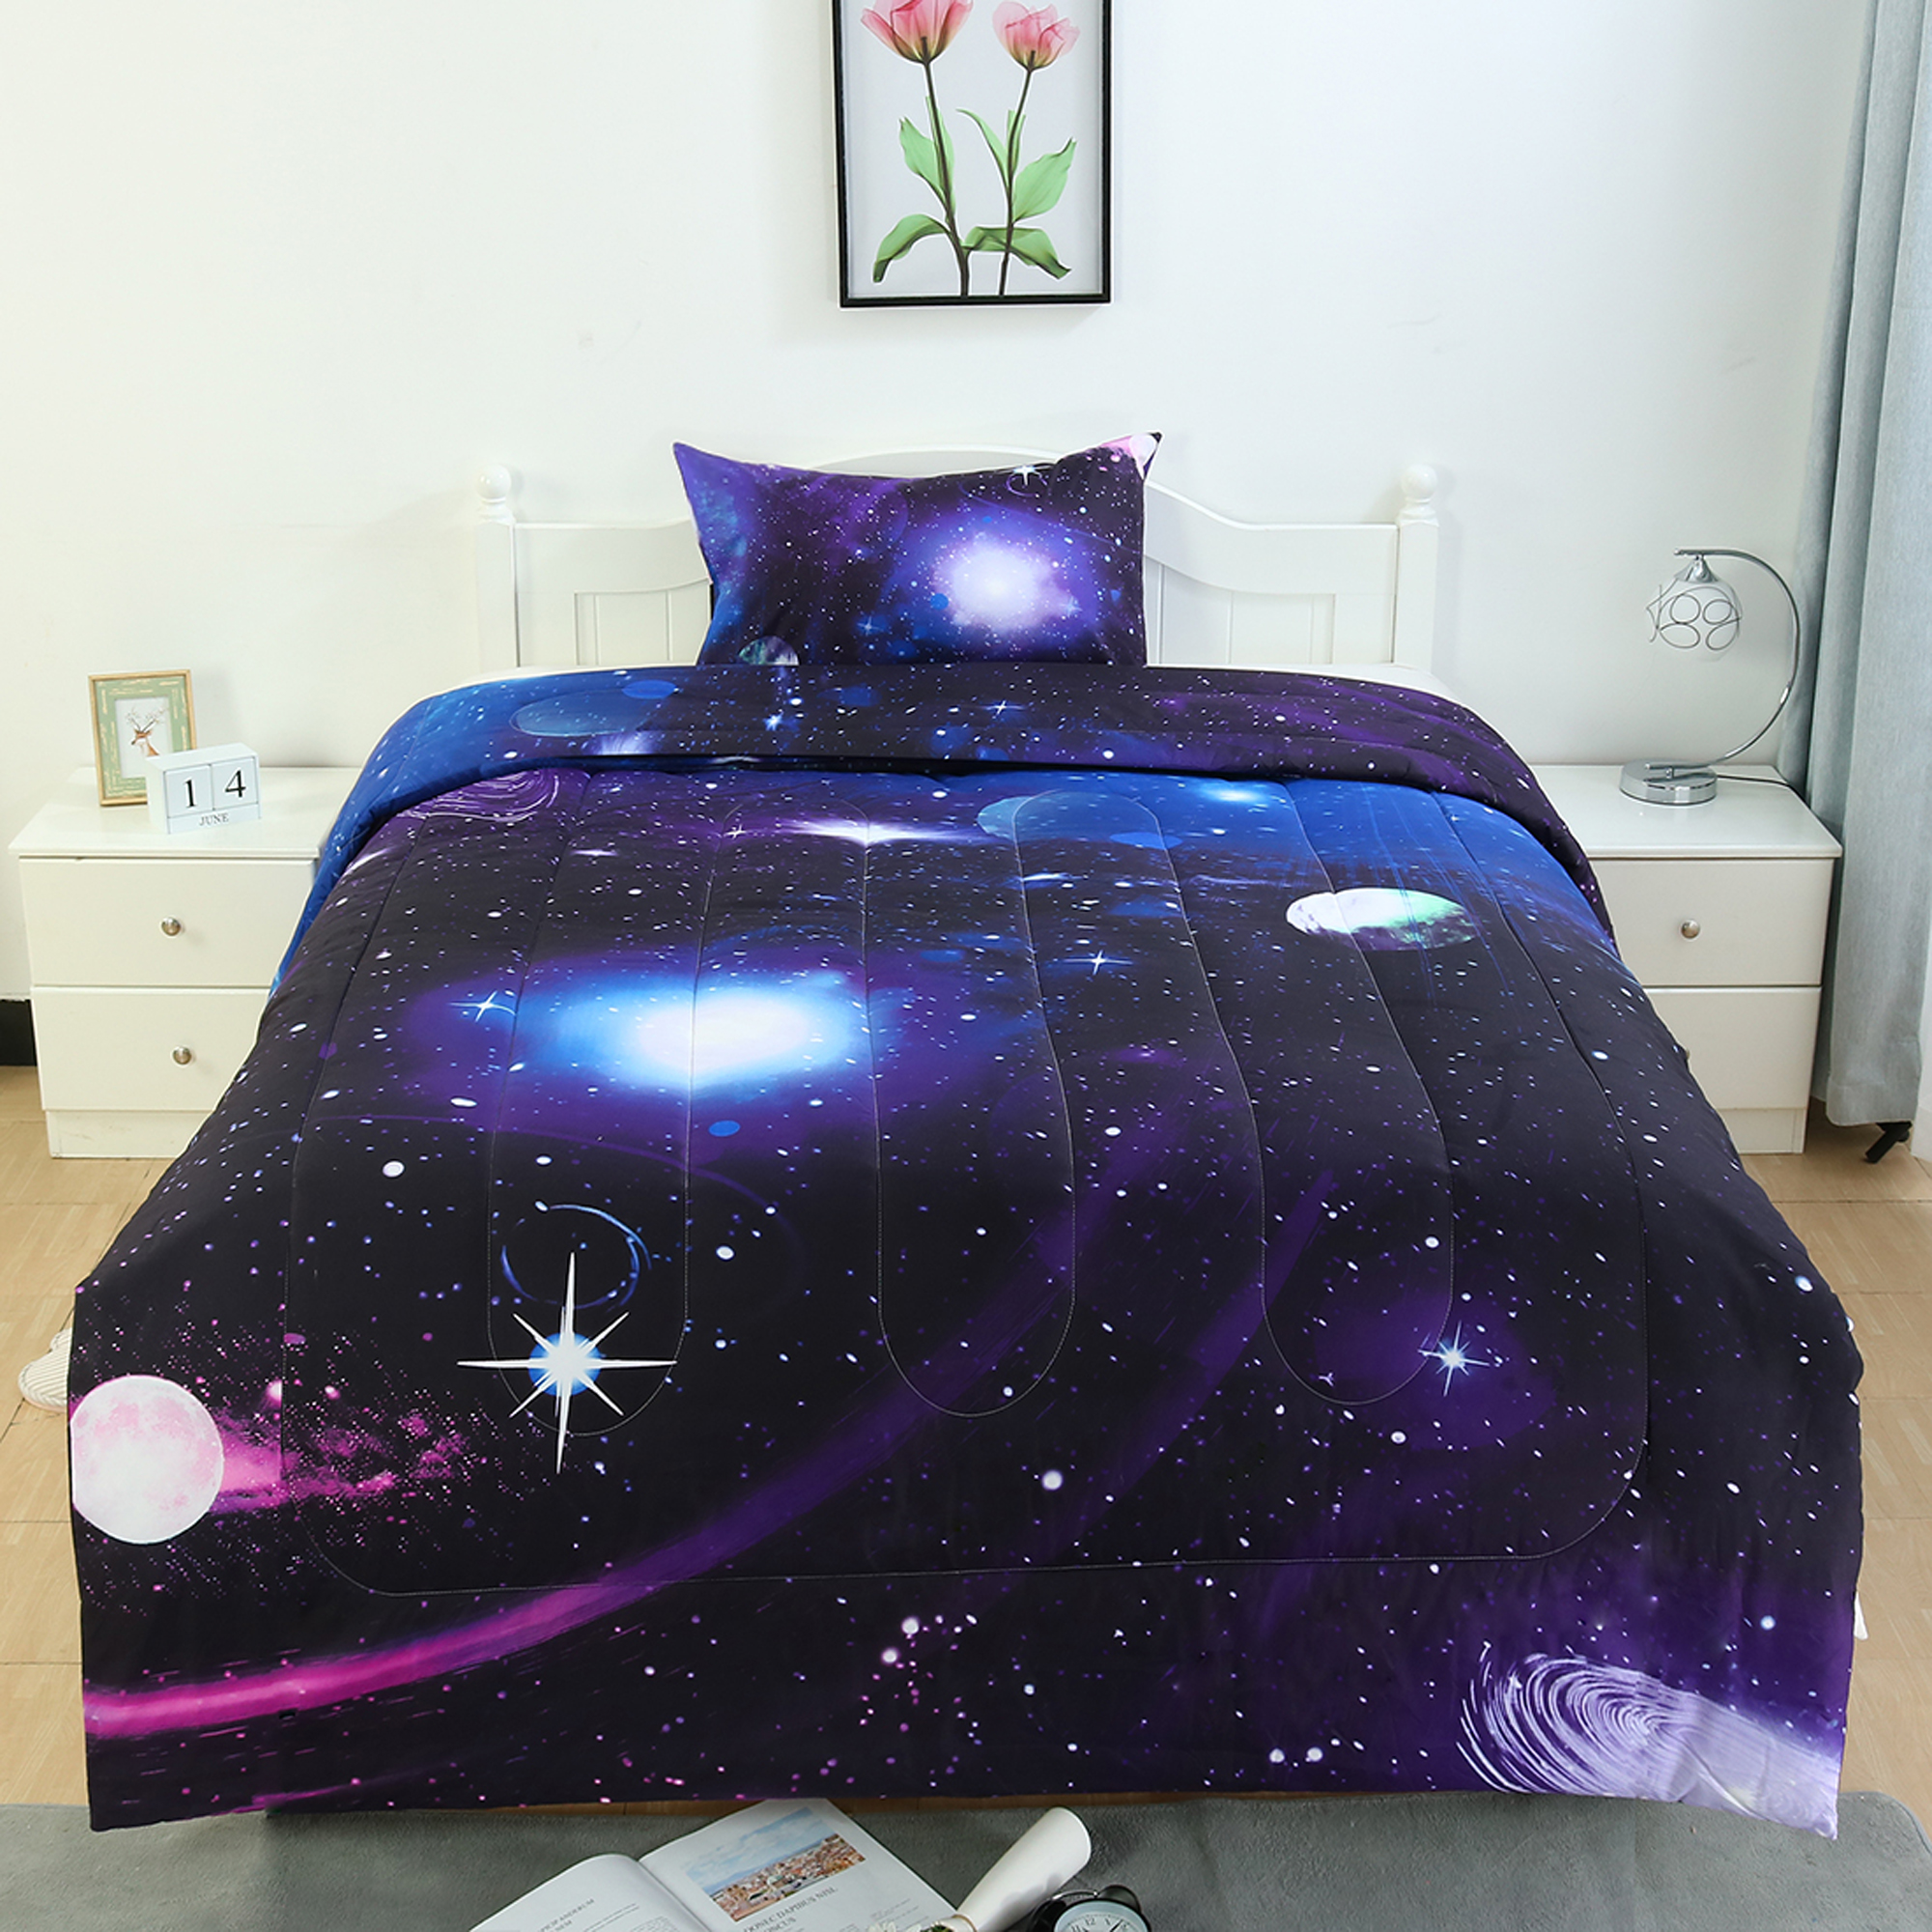 2 Piece Bed In A Bag Home Bedding All Season Down Alternative Comforter Set Galaxies Purple Twin Walmart Com Walmart Com